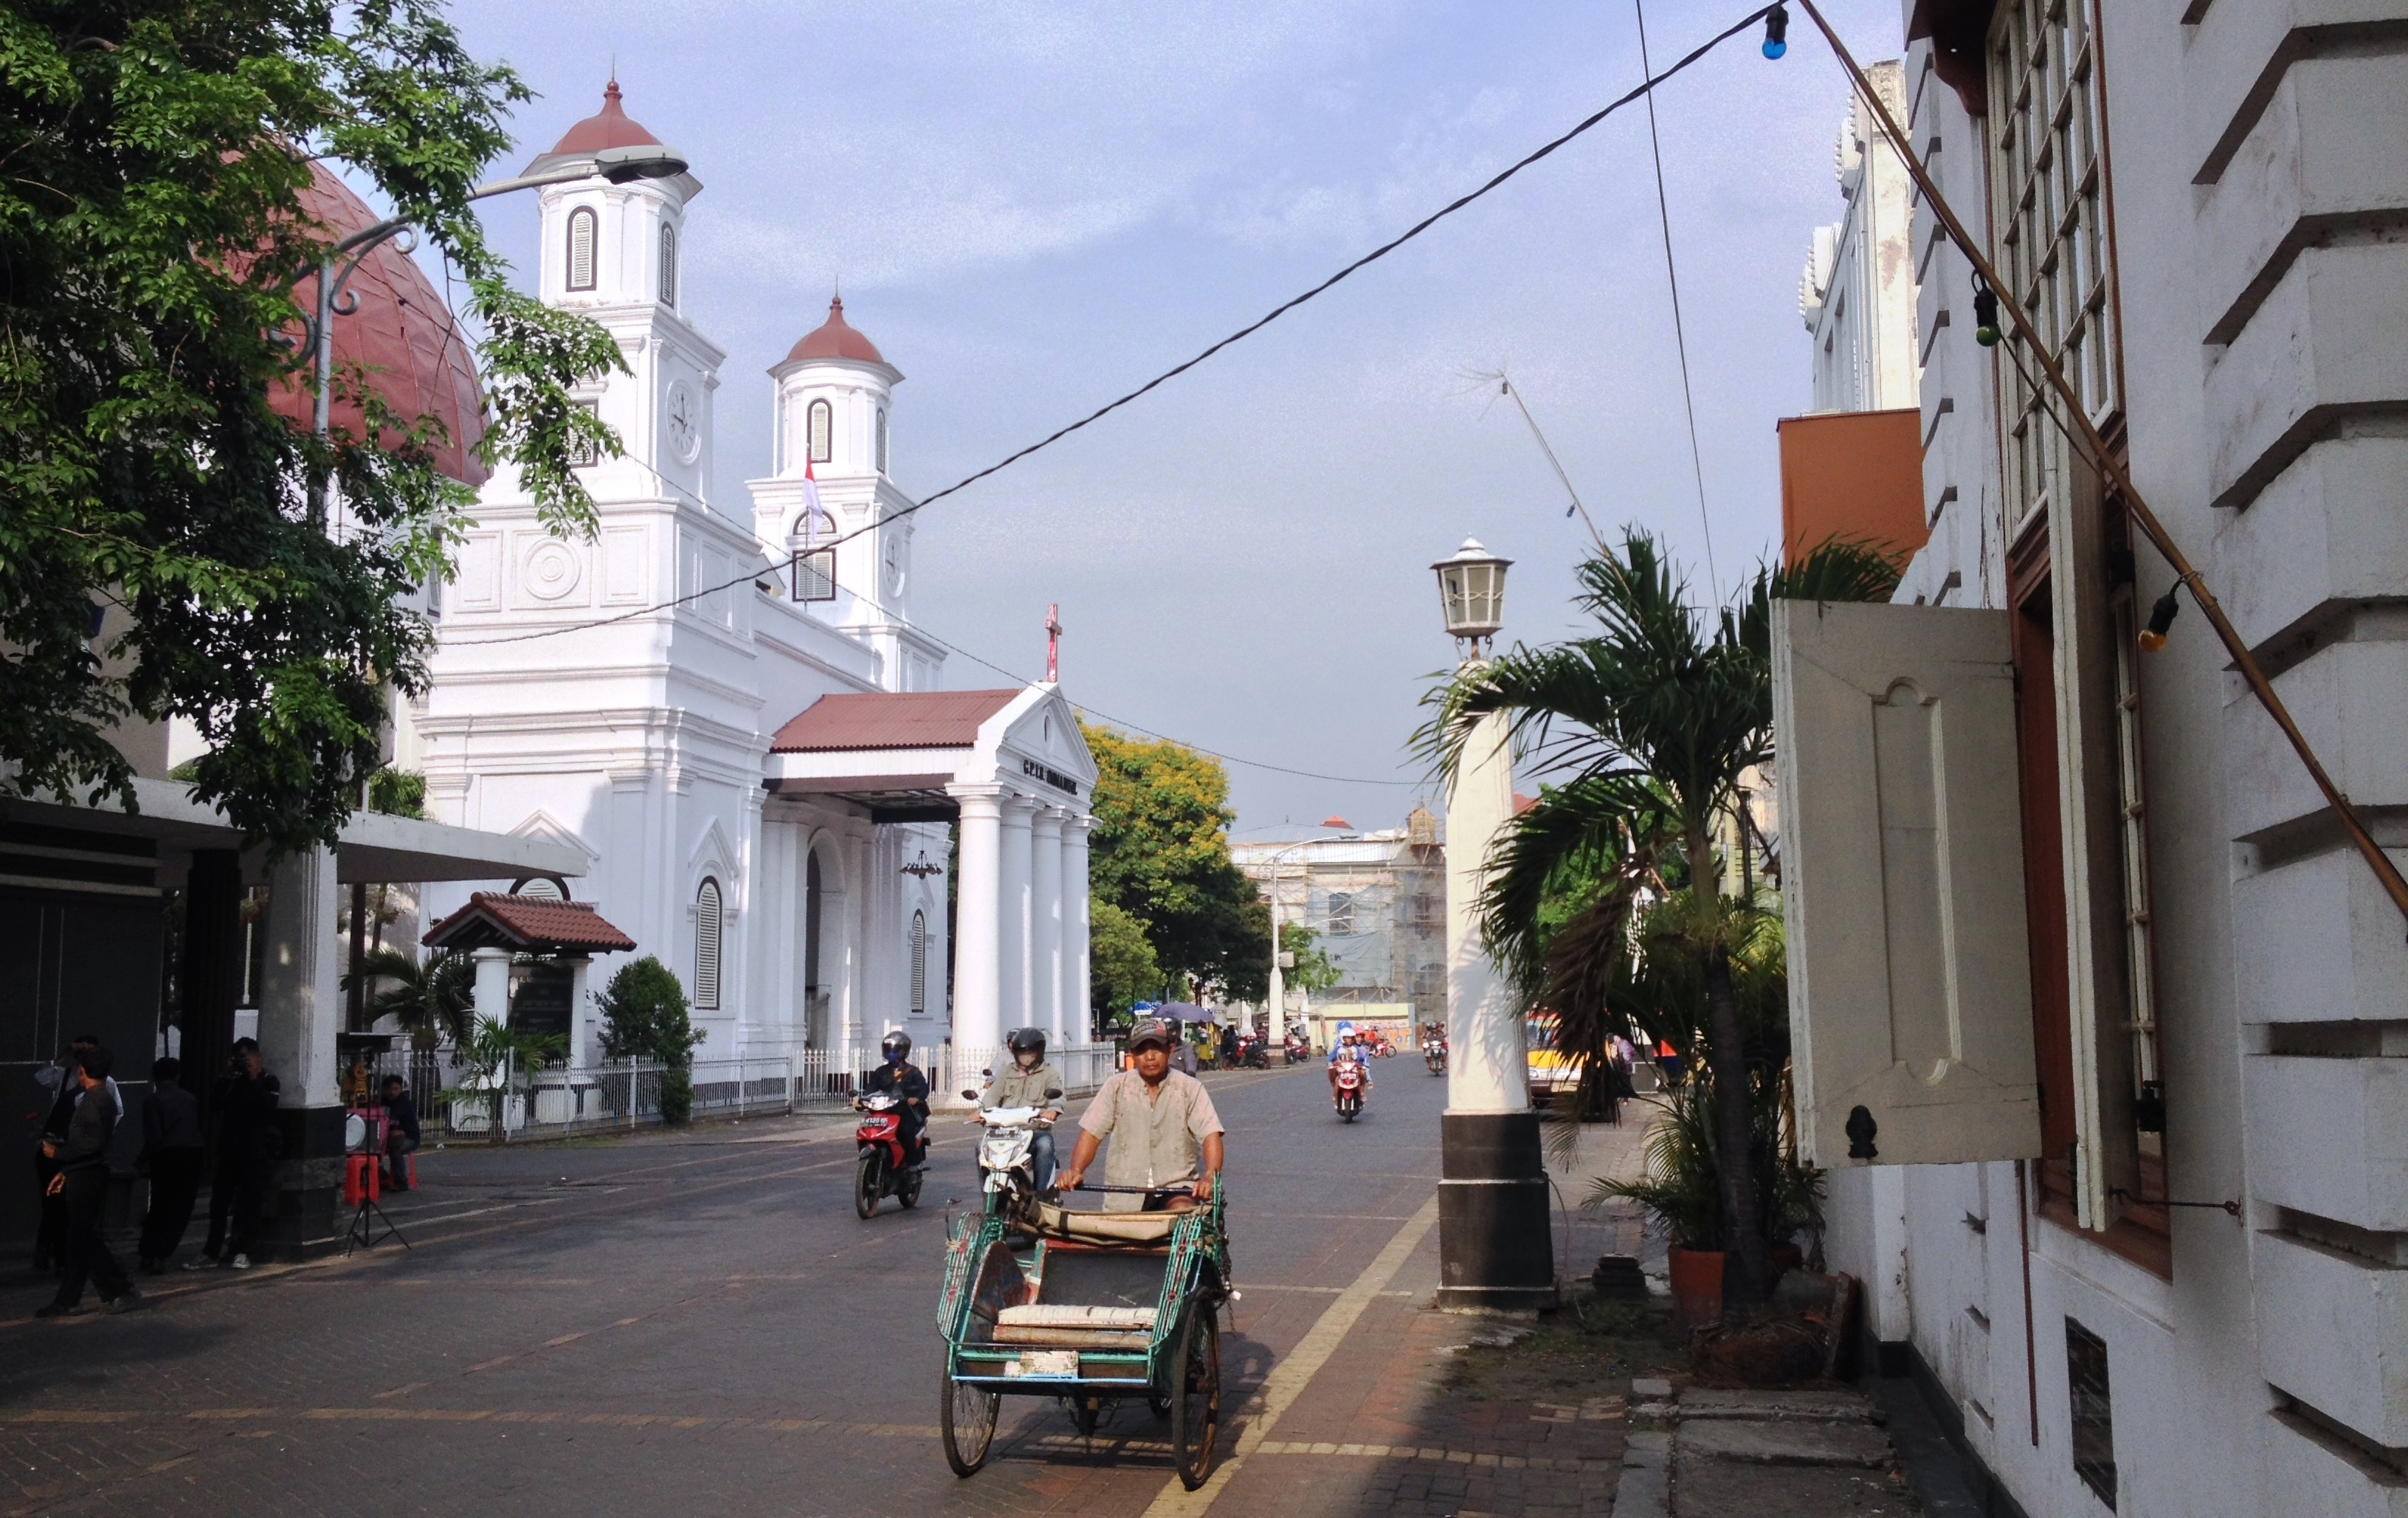 The old inner-city of Semarang (Kota Lama) in Indonesia (photo: Peter Timmer, Cultural Heritage Agency of the Netherlands)